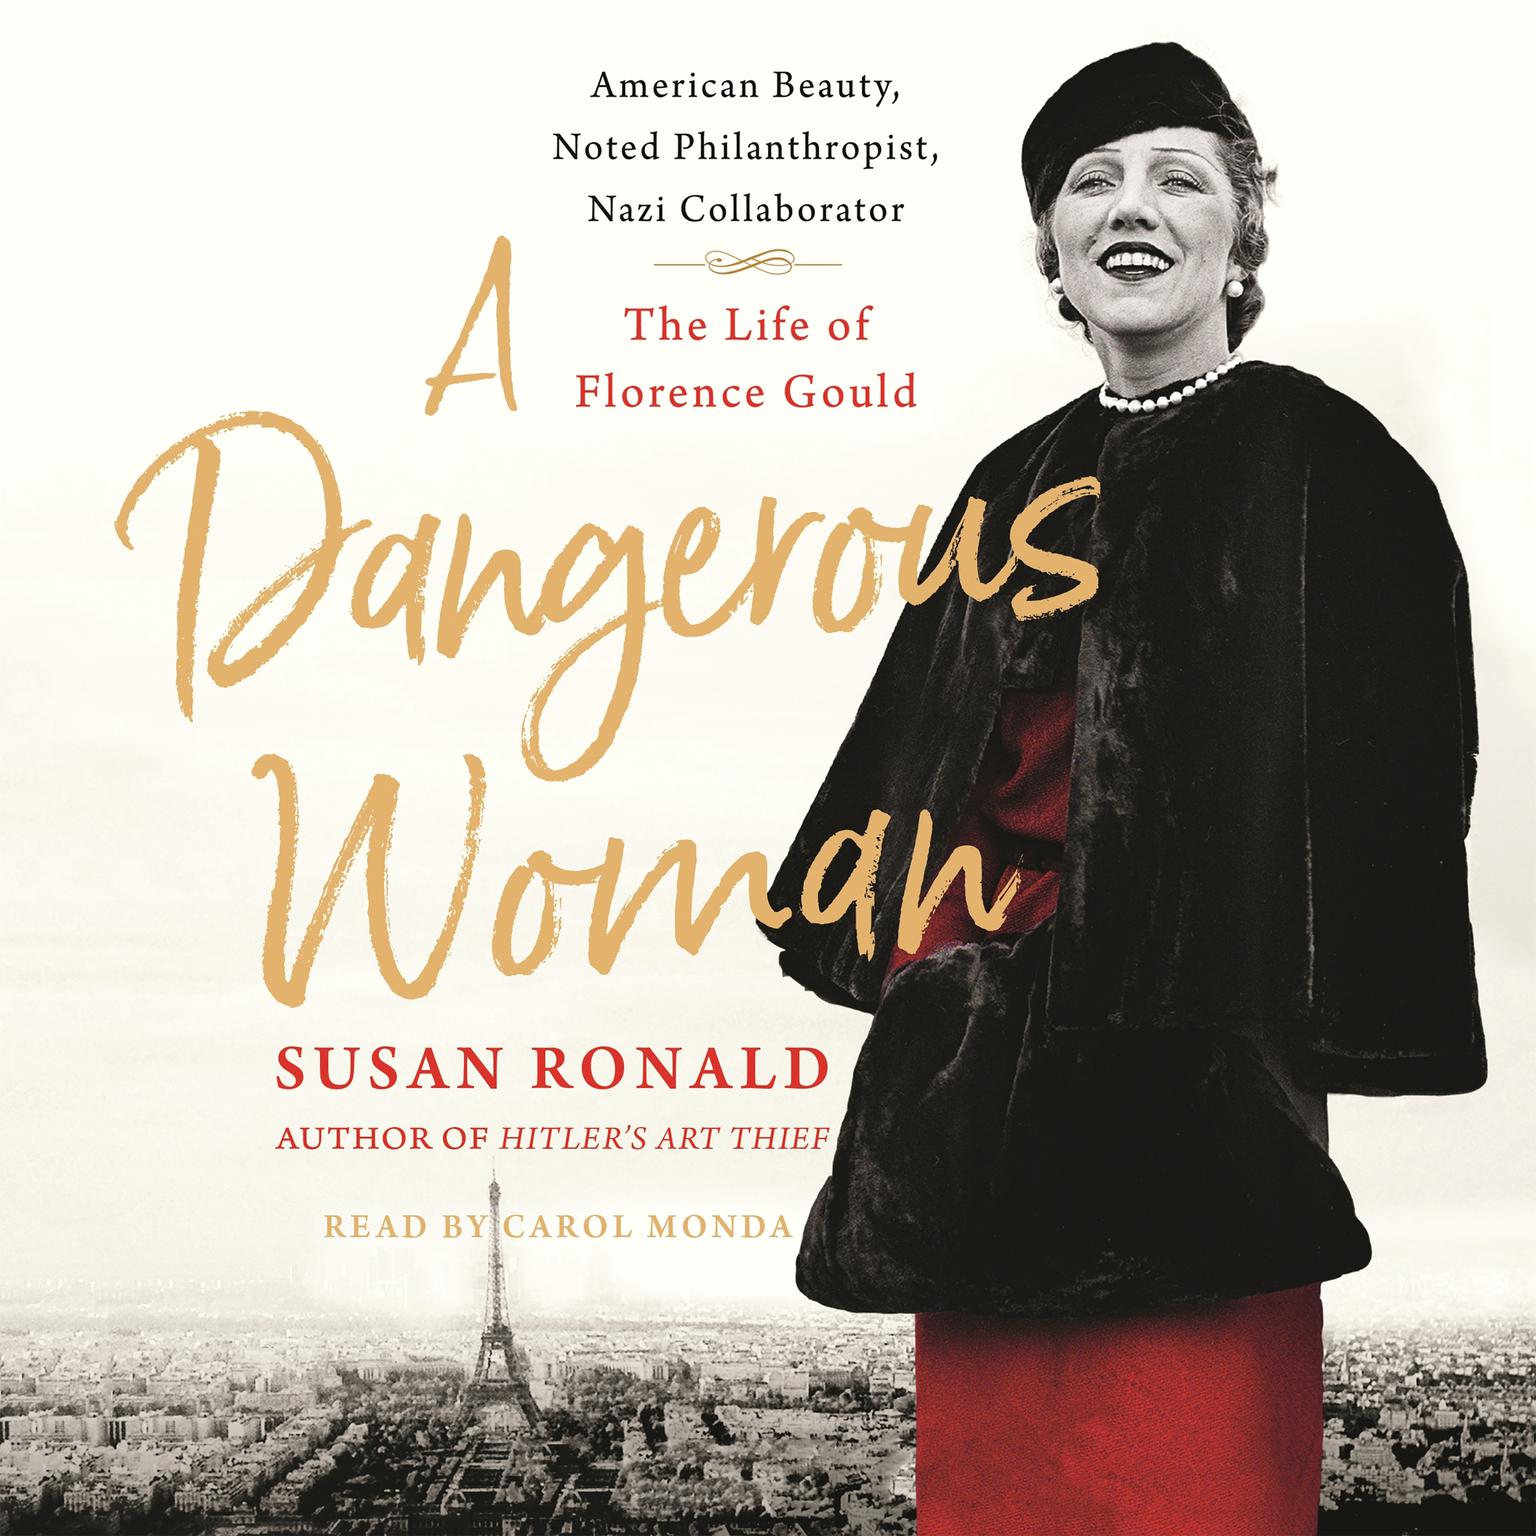 Printable A Dangerous Woman: American Beauty, Noted Philanthropist, Nazi Collaborator - The Life of Florence Gould Audiobook Cover Art